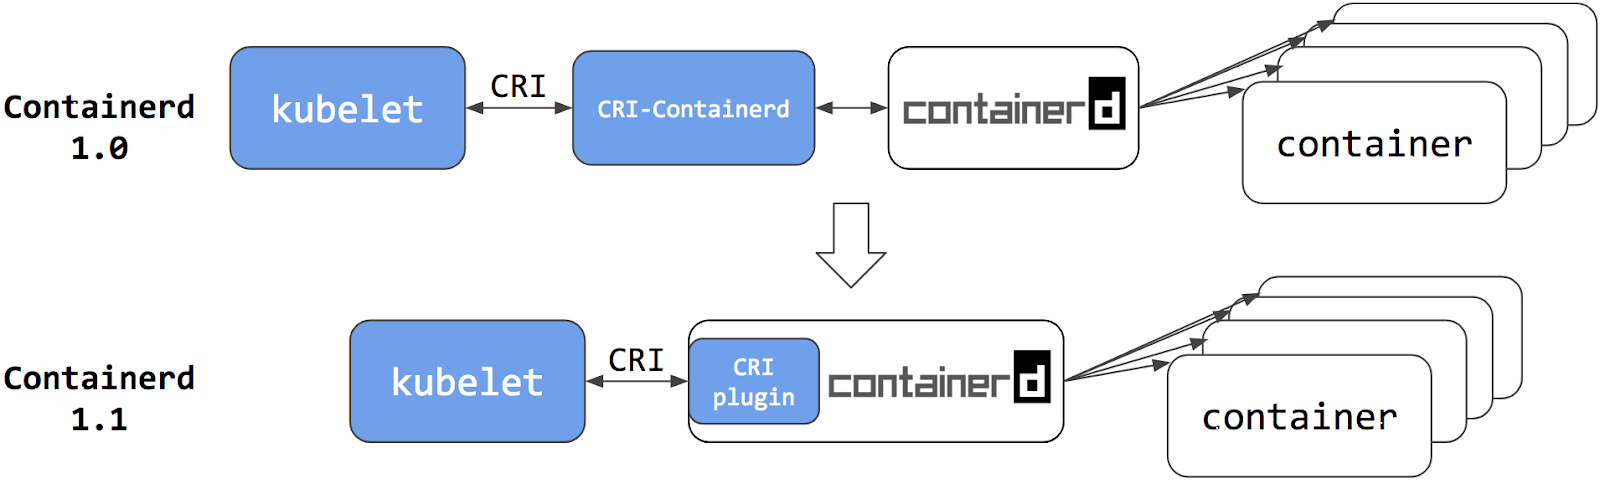 Kubernetes Containerd Integration Goes GA - Kubernetes